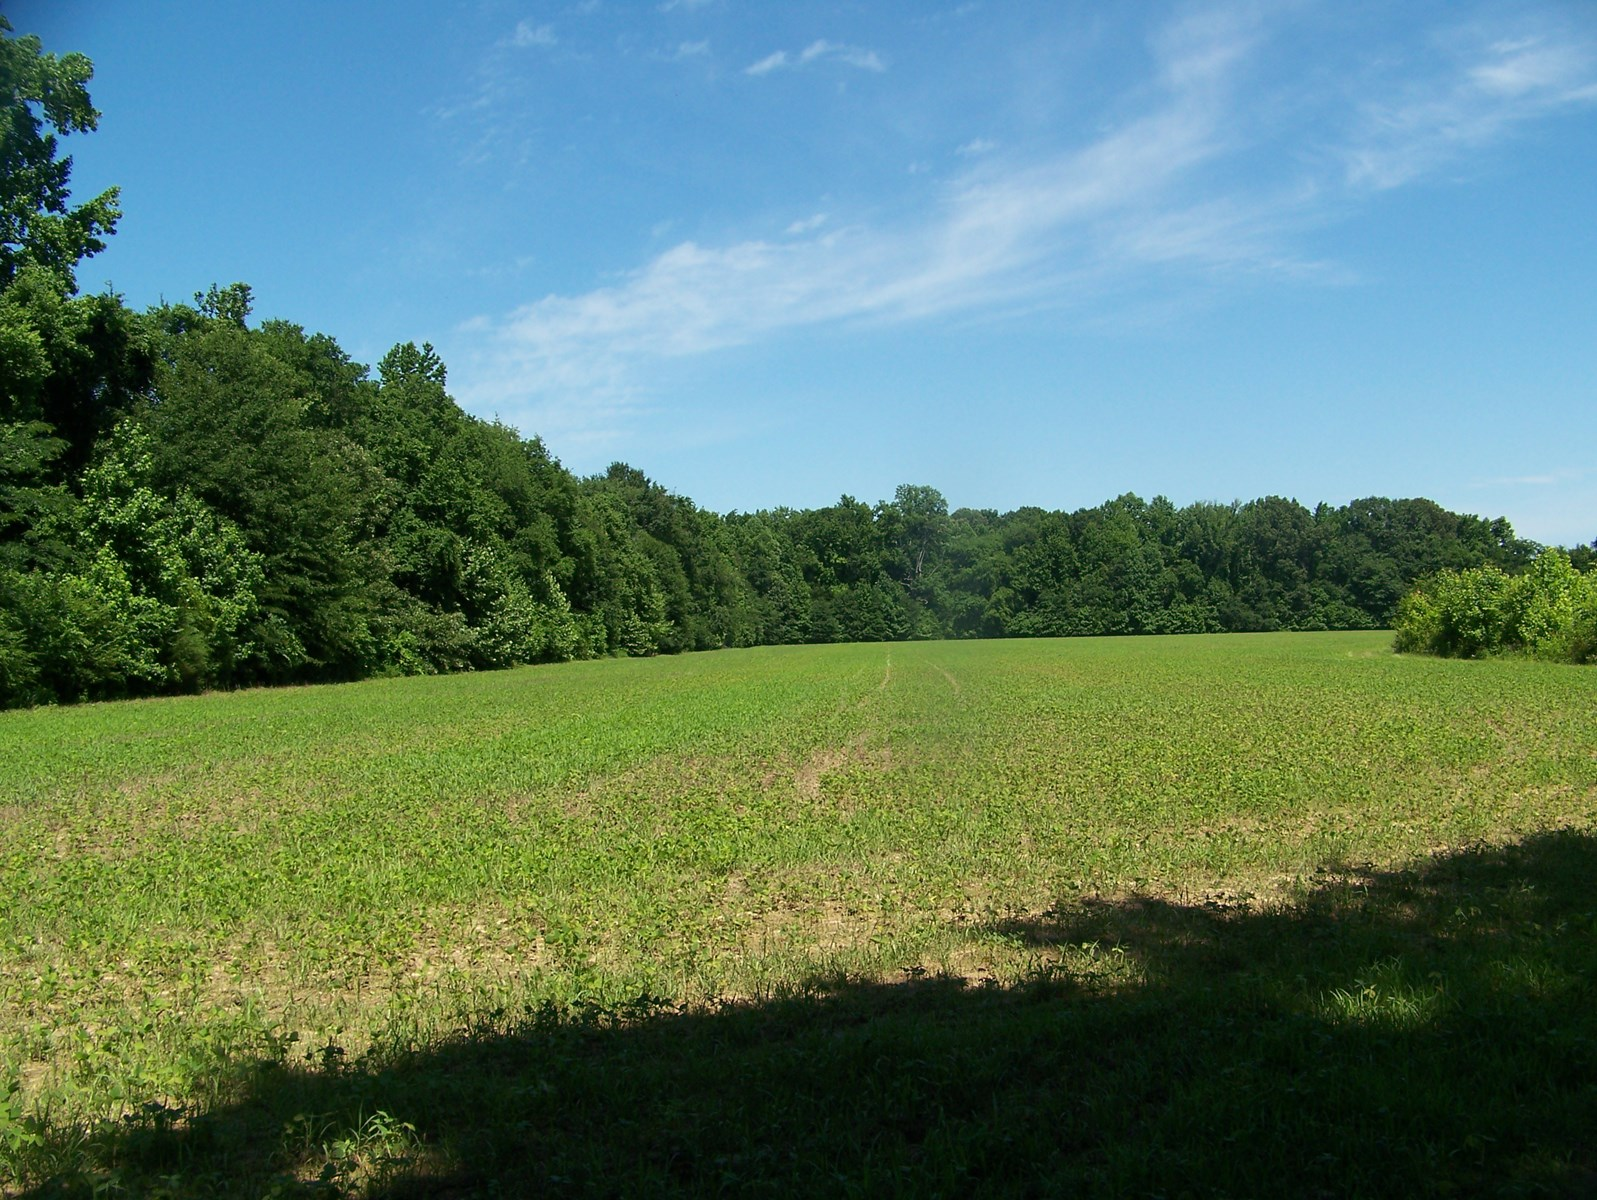 Creek Front Property In Tn W Tillable Farm Land